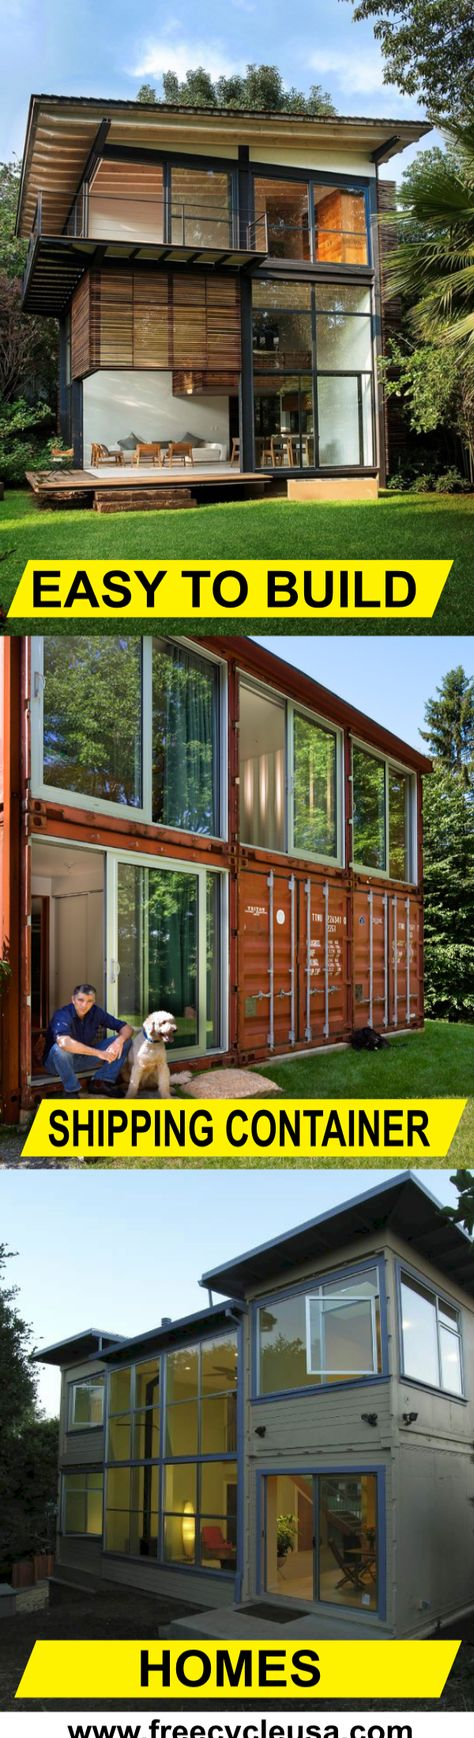 121 best shipping container homes images on Pinterest | DIY ...